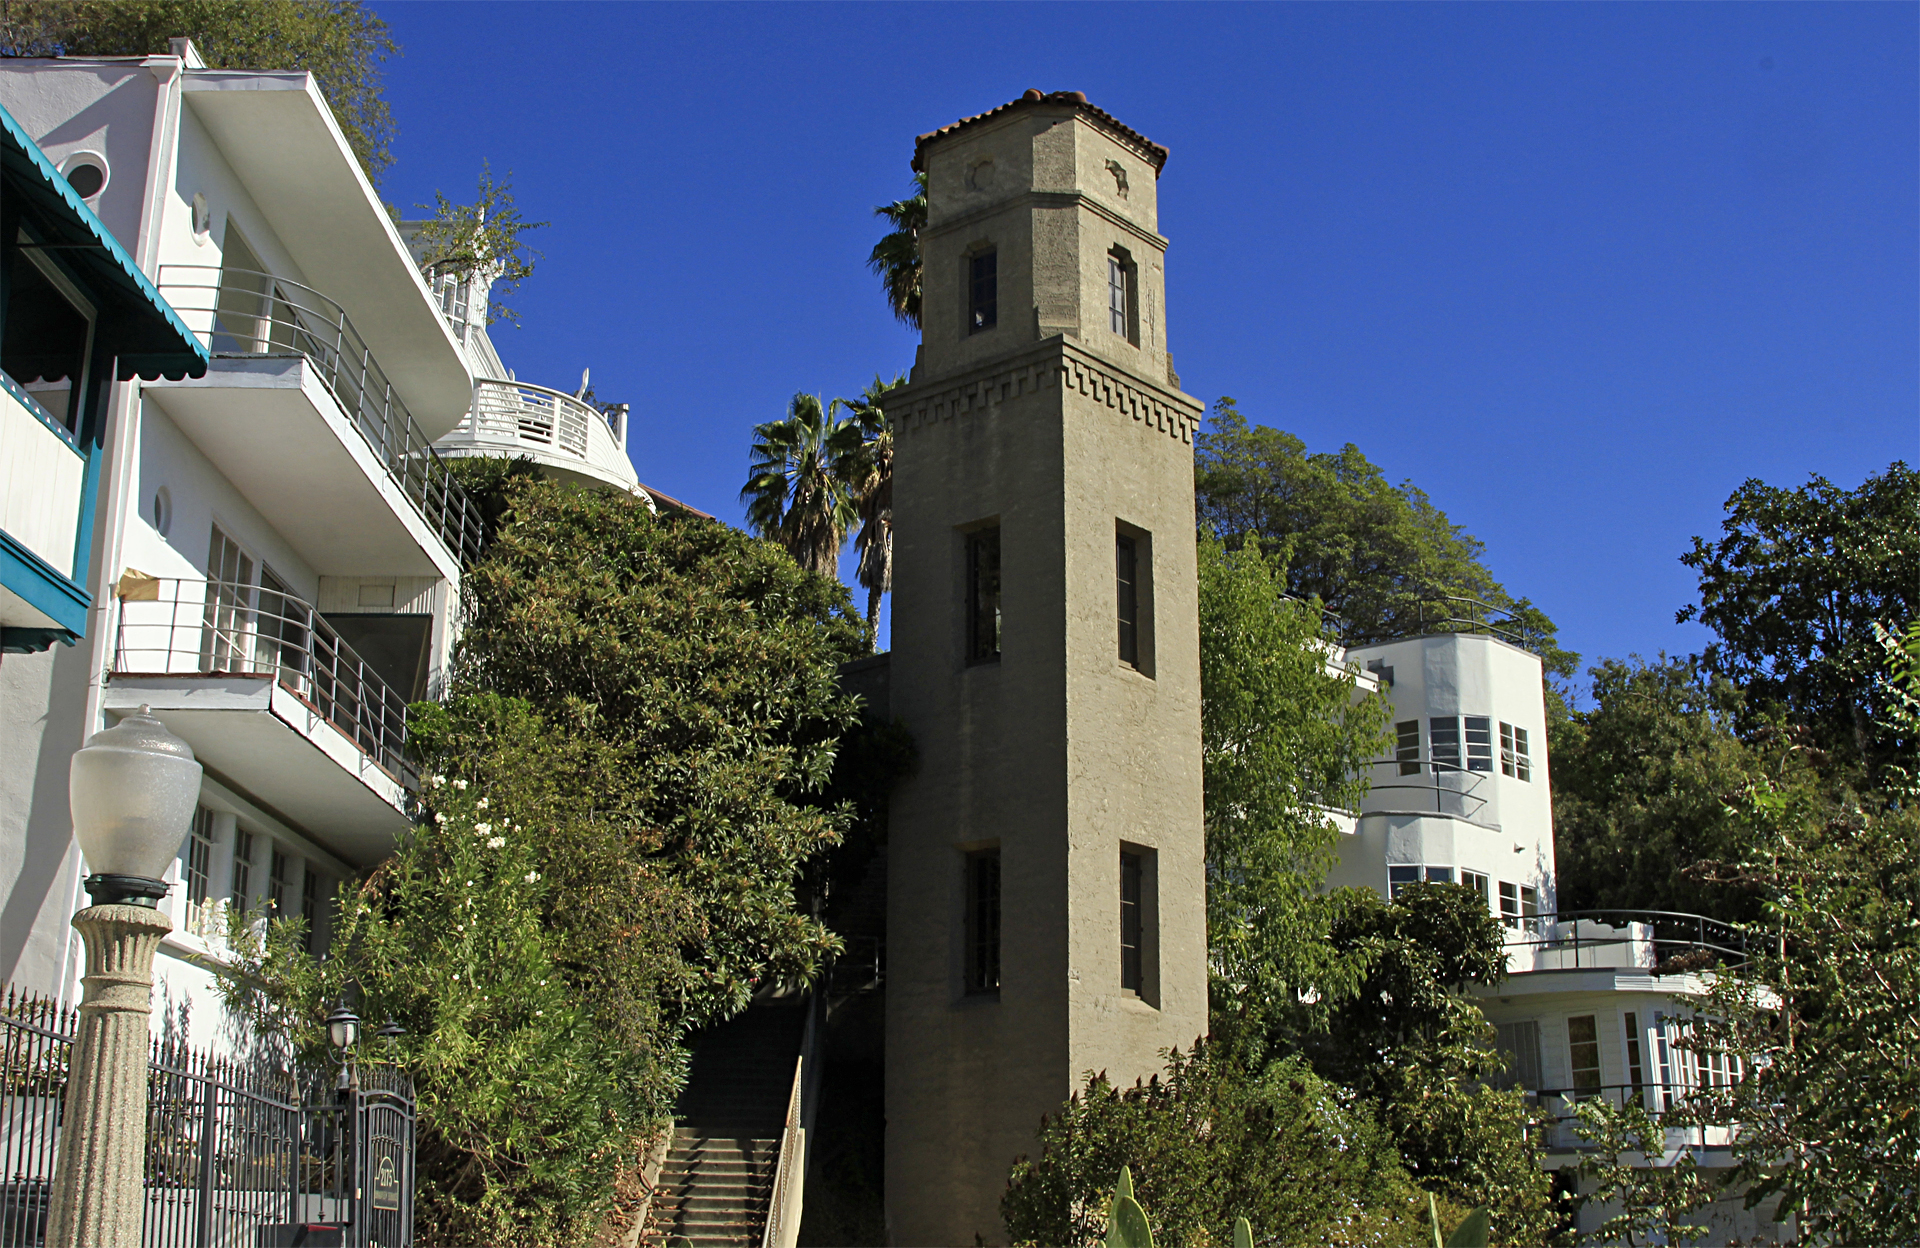 The seclusion and unusual setting of High Tower Court made it the ideal setting for the residence of noir detective Philip Marlowe, played by Elliot Gould, in the 1973 movie of Raymond Chandler's novel The Long Goodbye.